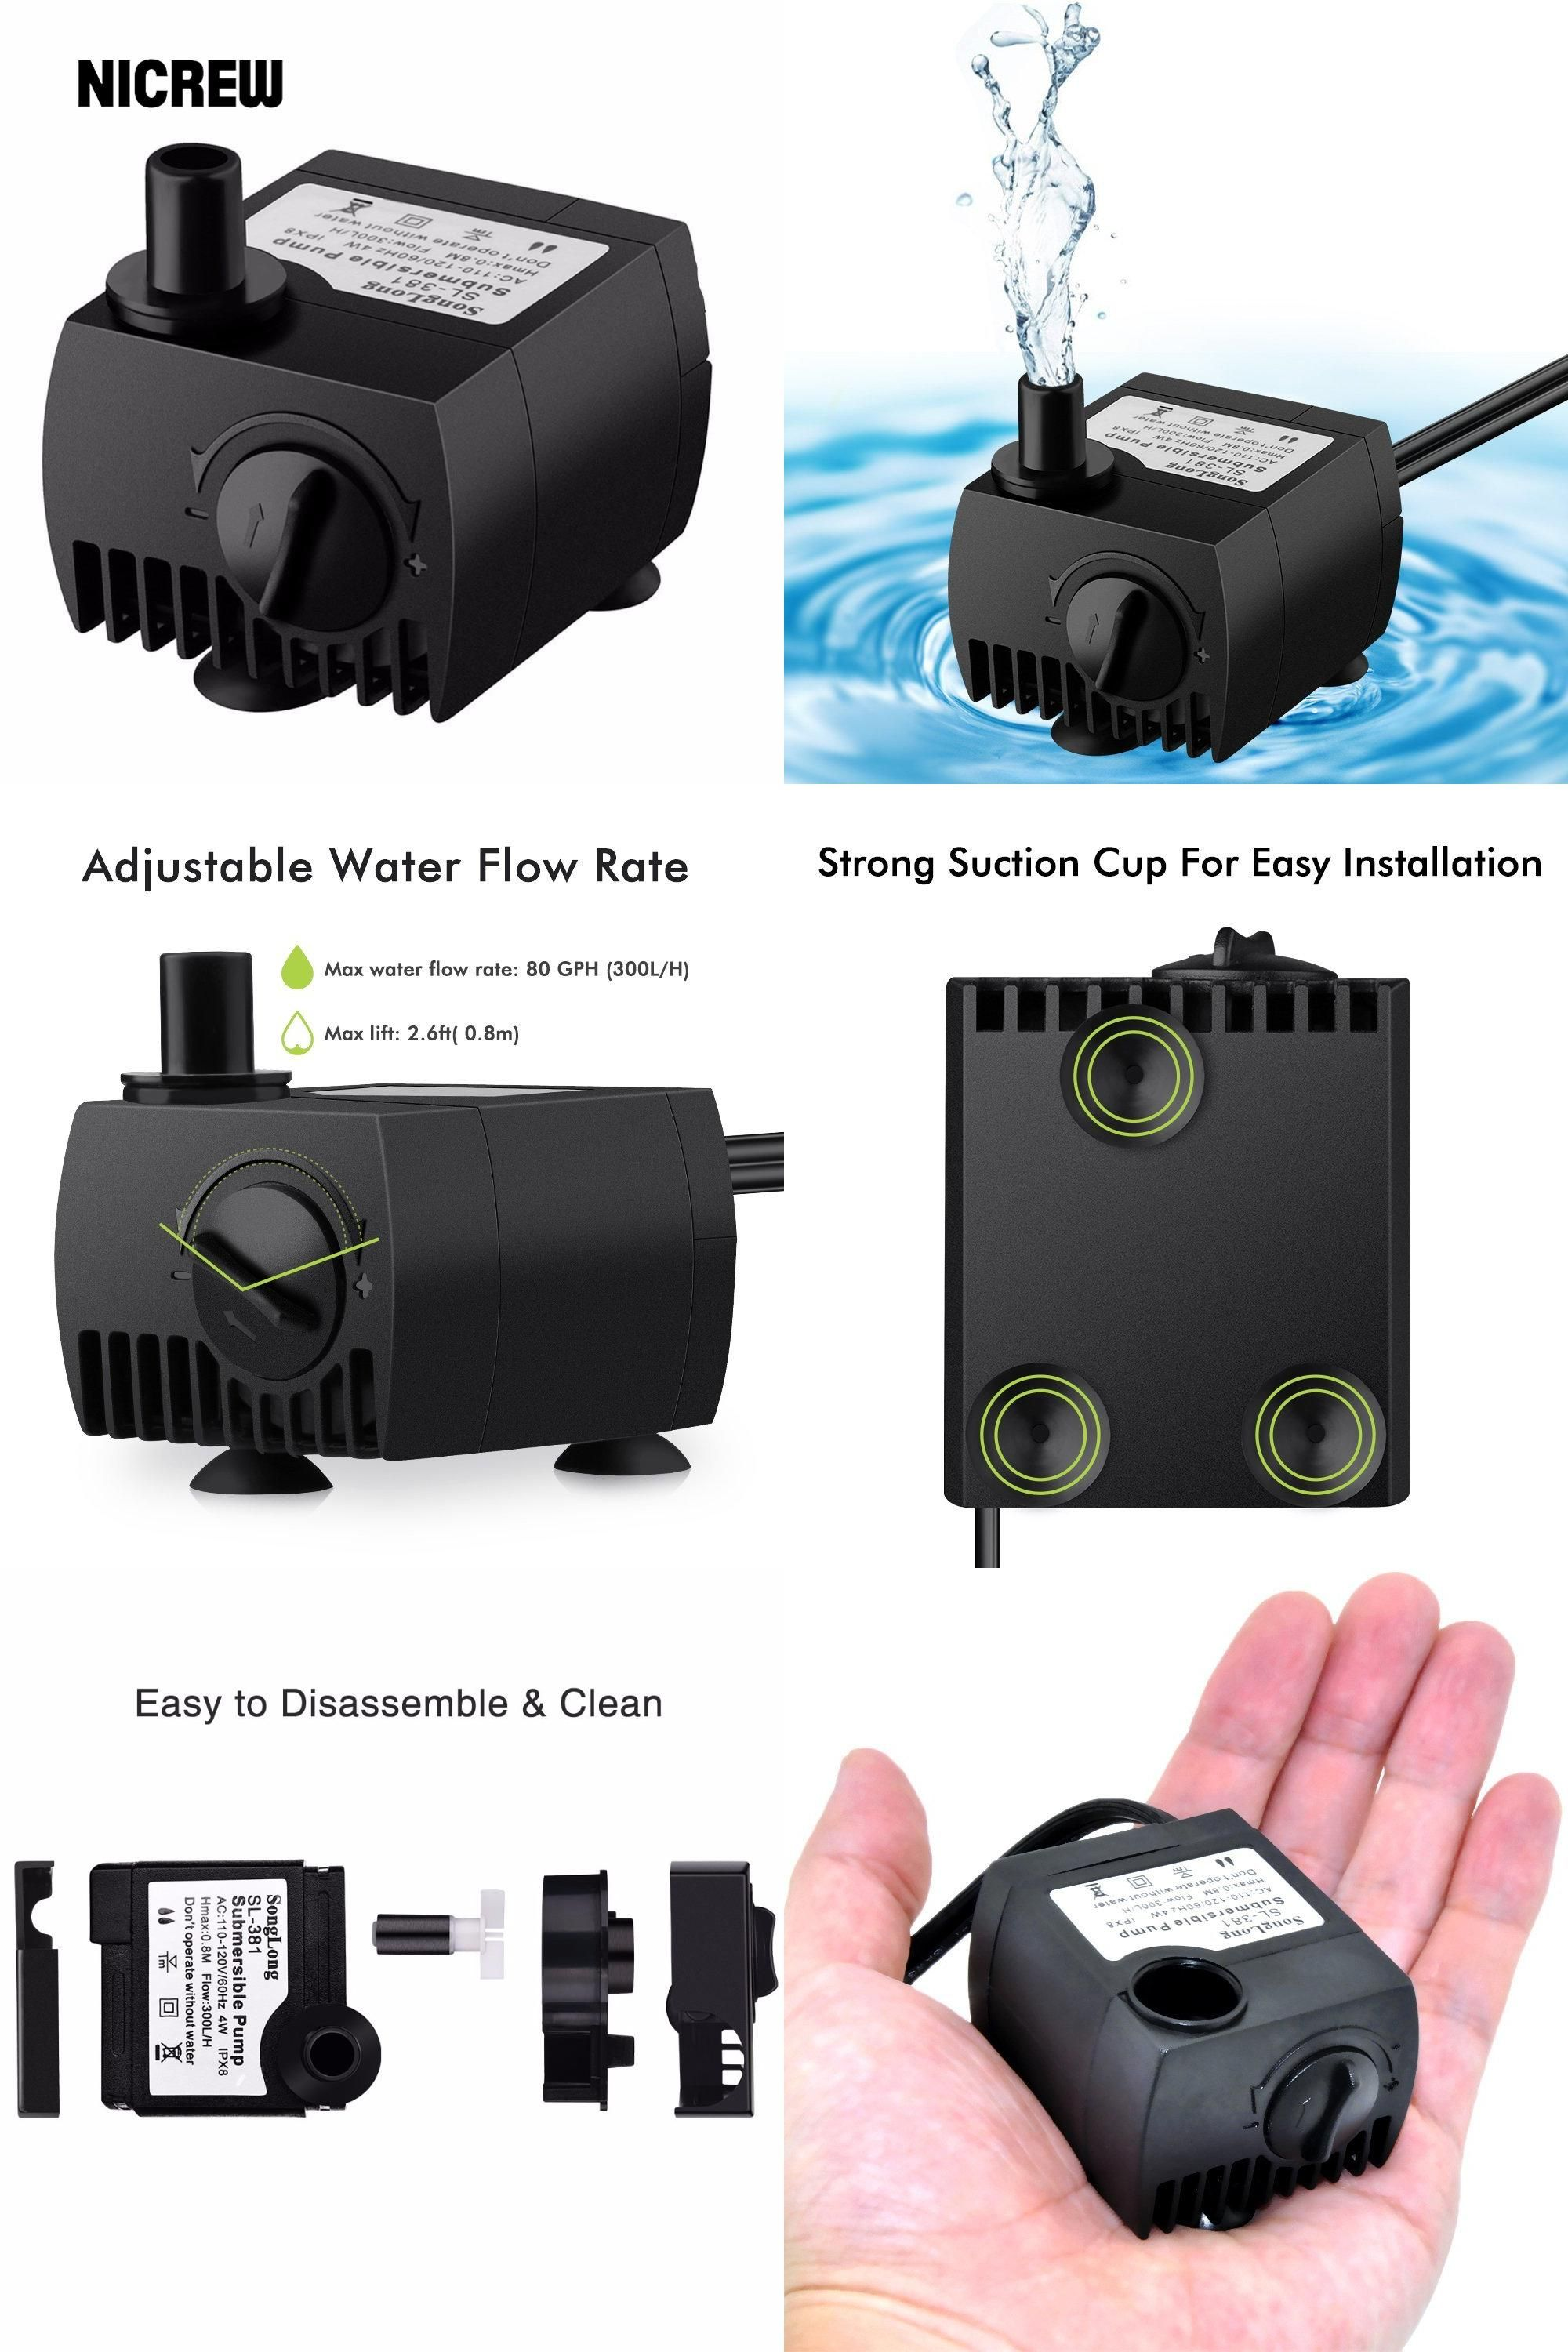 Visit To Buy Nicrew Submersible Water Pump For Aquarium Pond Fish Tank Fountain Water Pump Pompe Hydroponics With 1 4m Powe Water Pumps Fish Tank Submersible